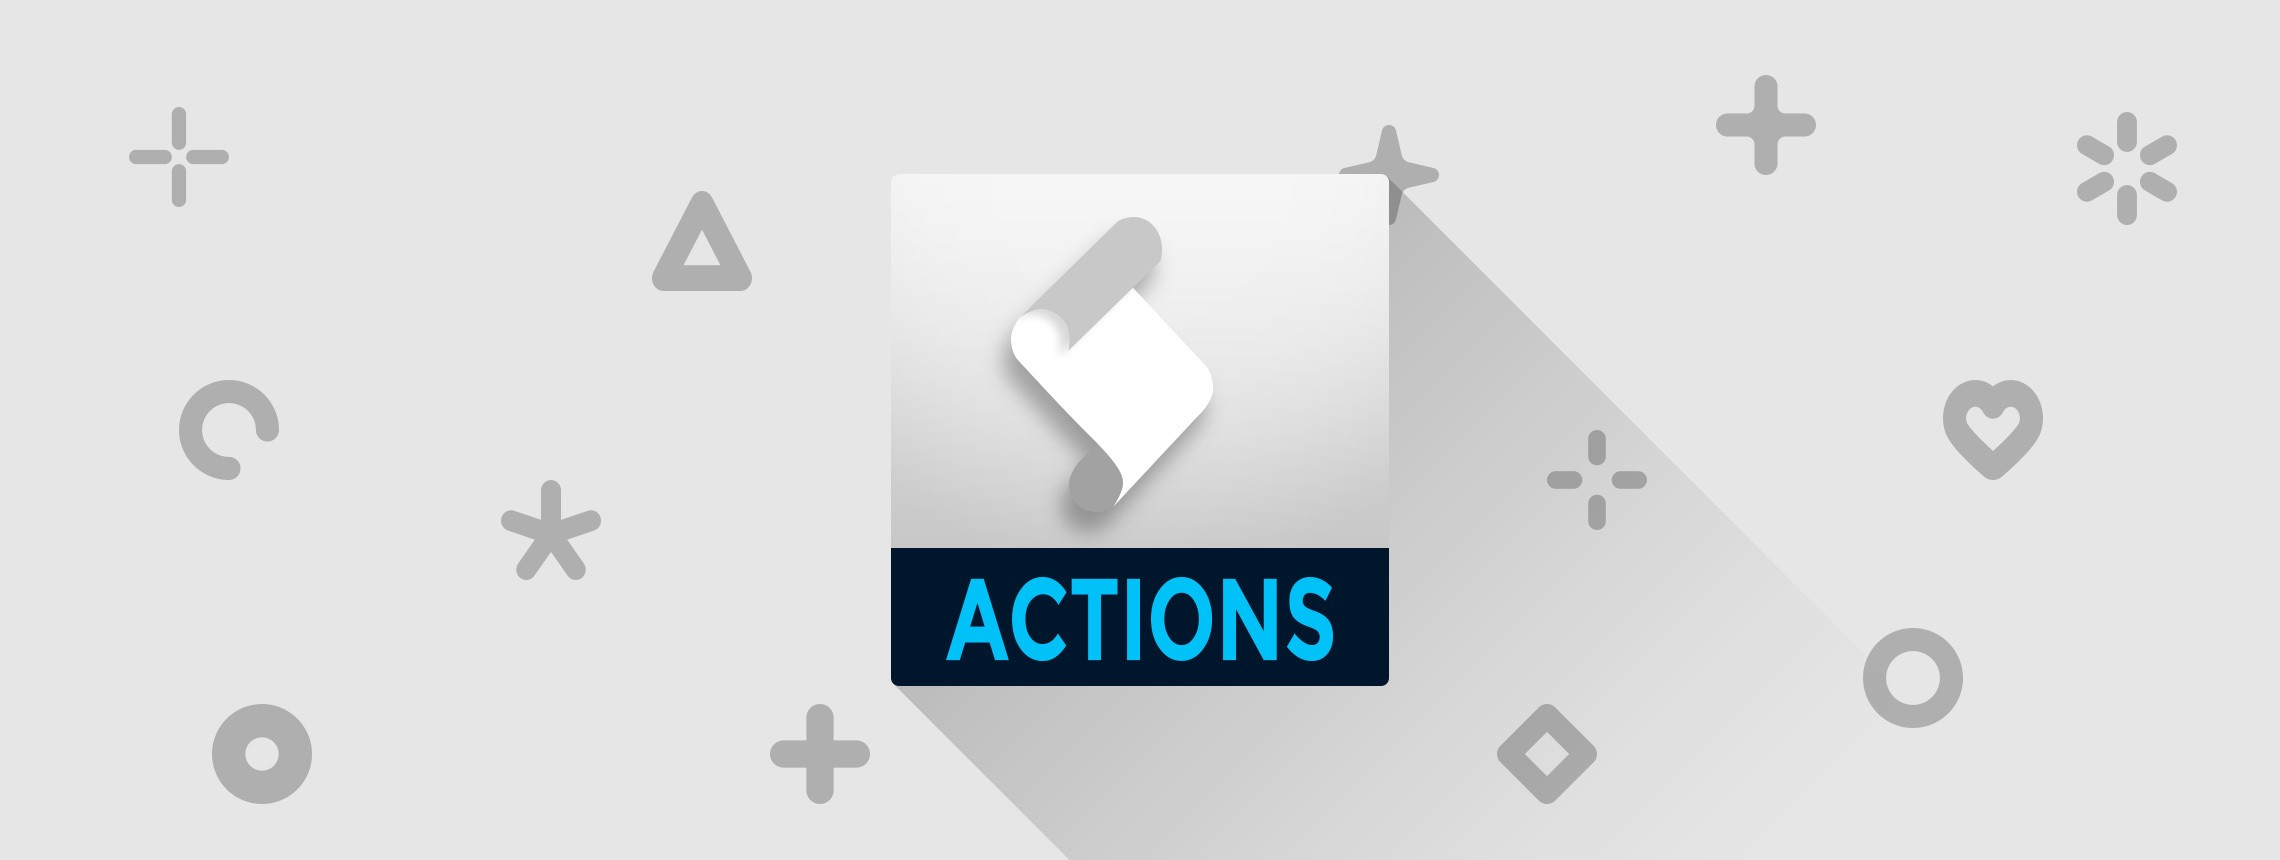 10 Photoshop actions every designer should have